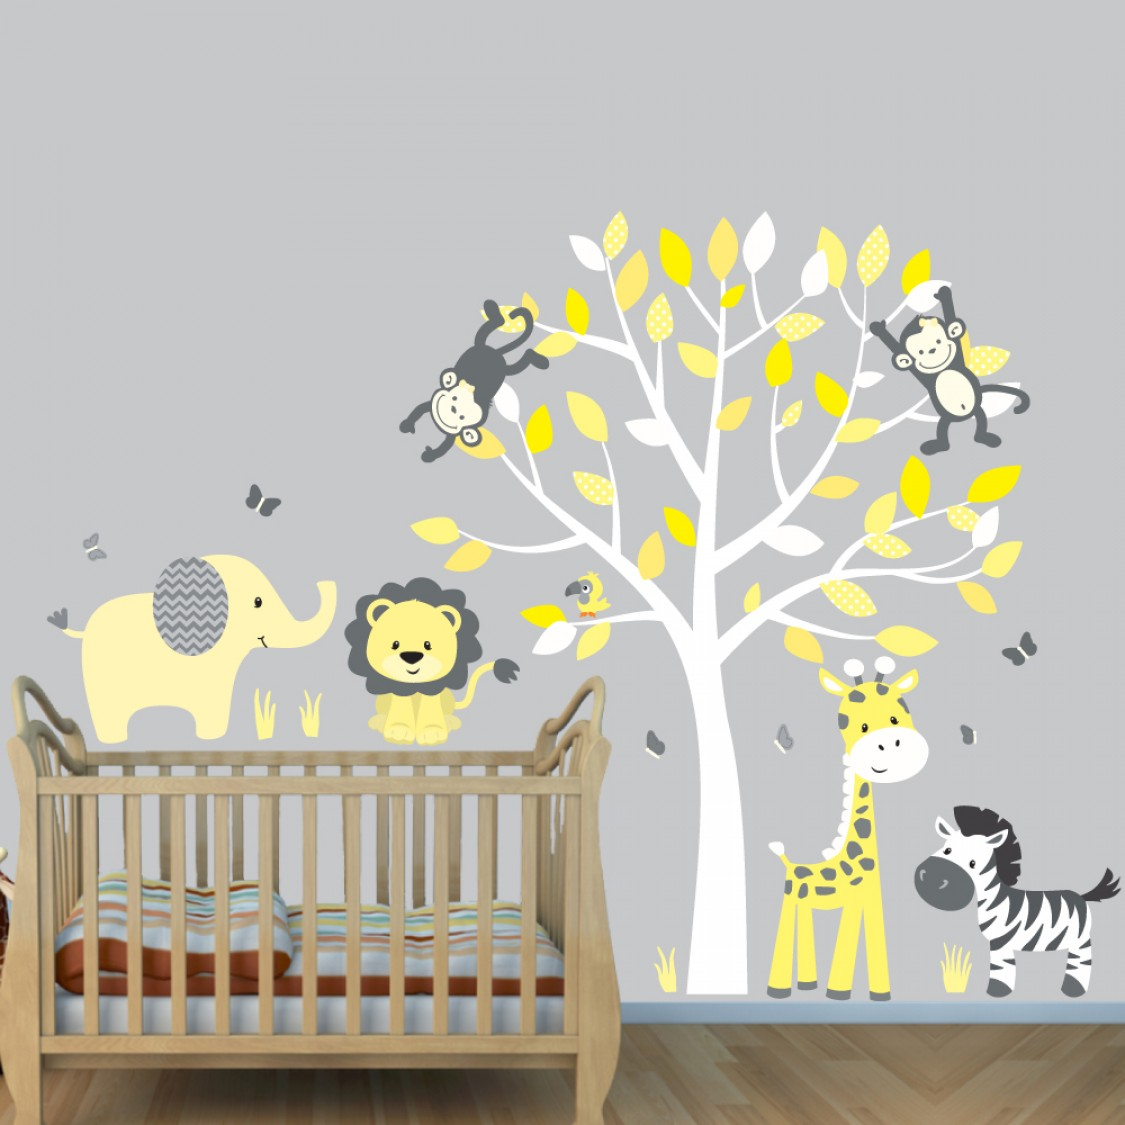 Yellow Gray Jungle Wall Stickers With Elephant Wall Decal For Kids Rooms